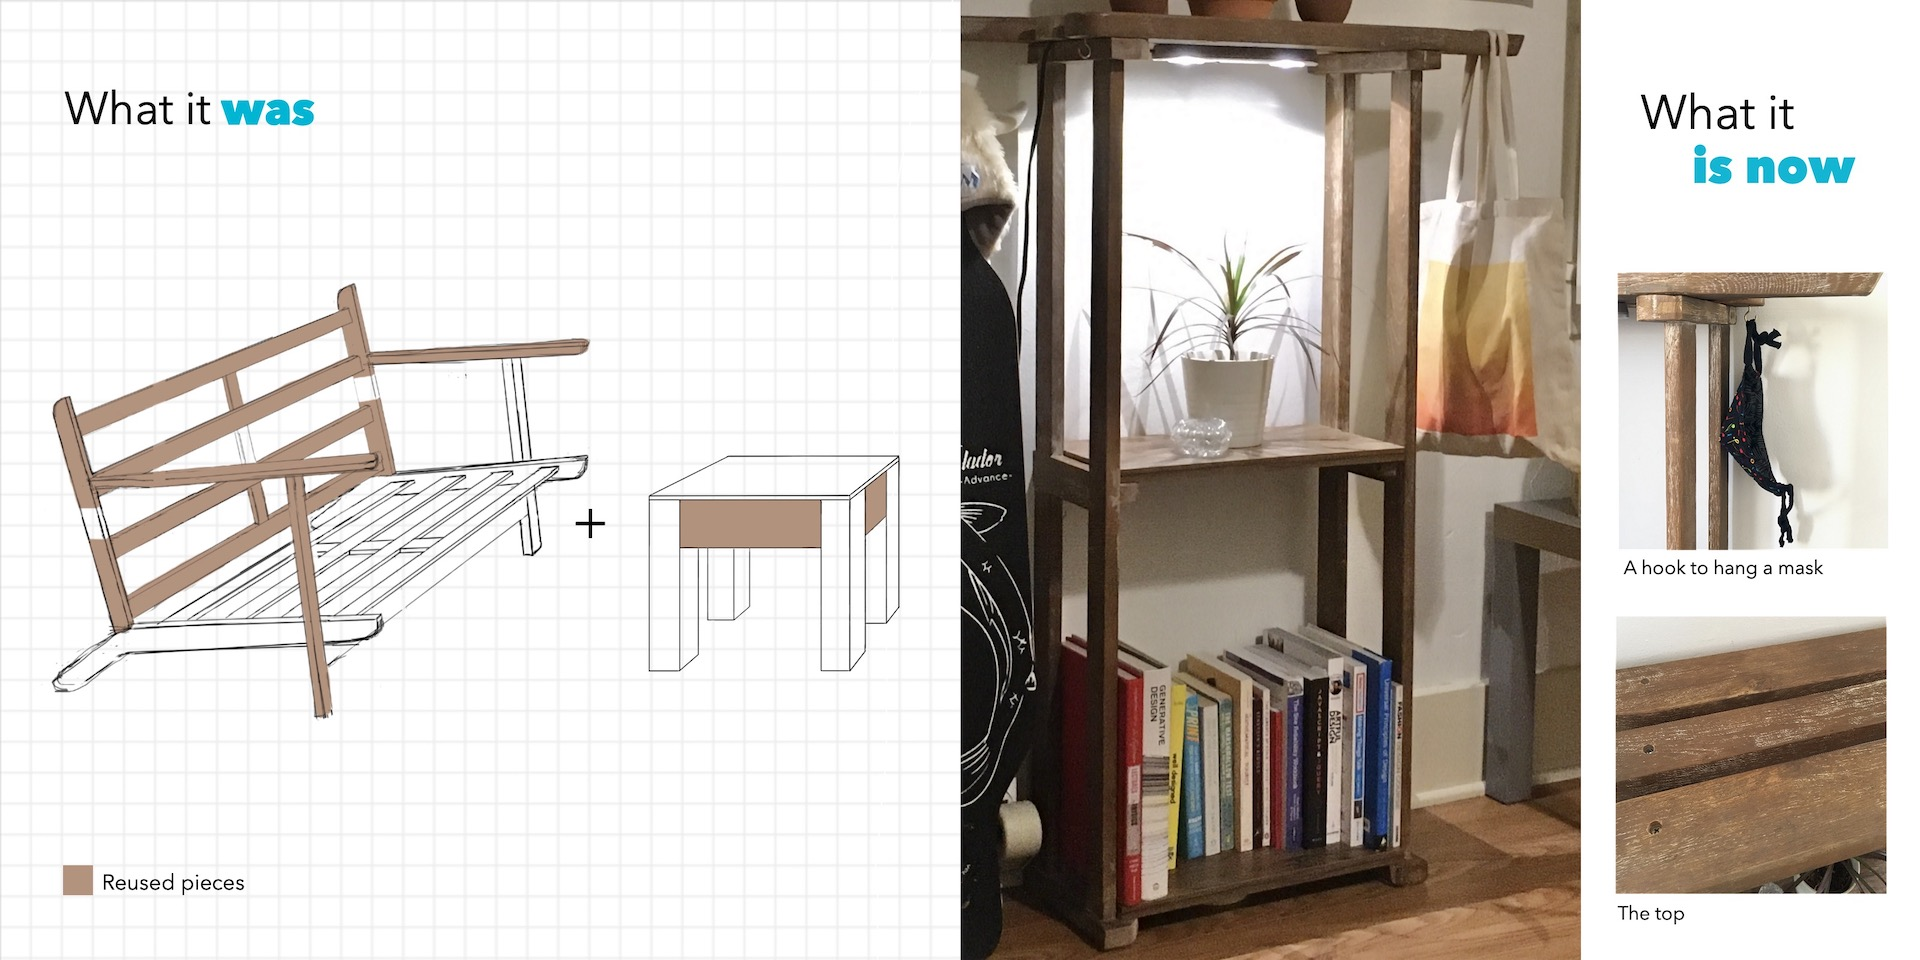 "On the left, the text ""What it was"" on a graph paper drawing of a table and loveseat with highlighted portions that were used to make the bookshelf pictured on the right with the text ""What it is now""."